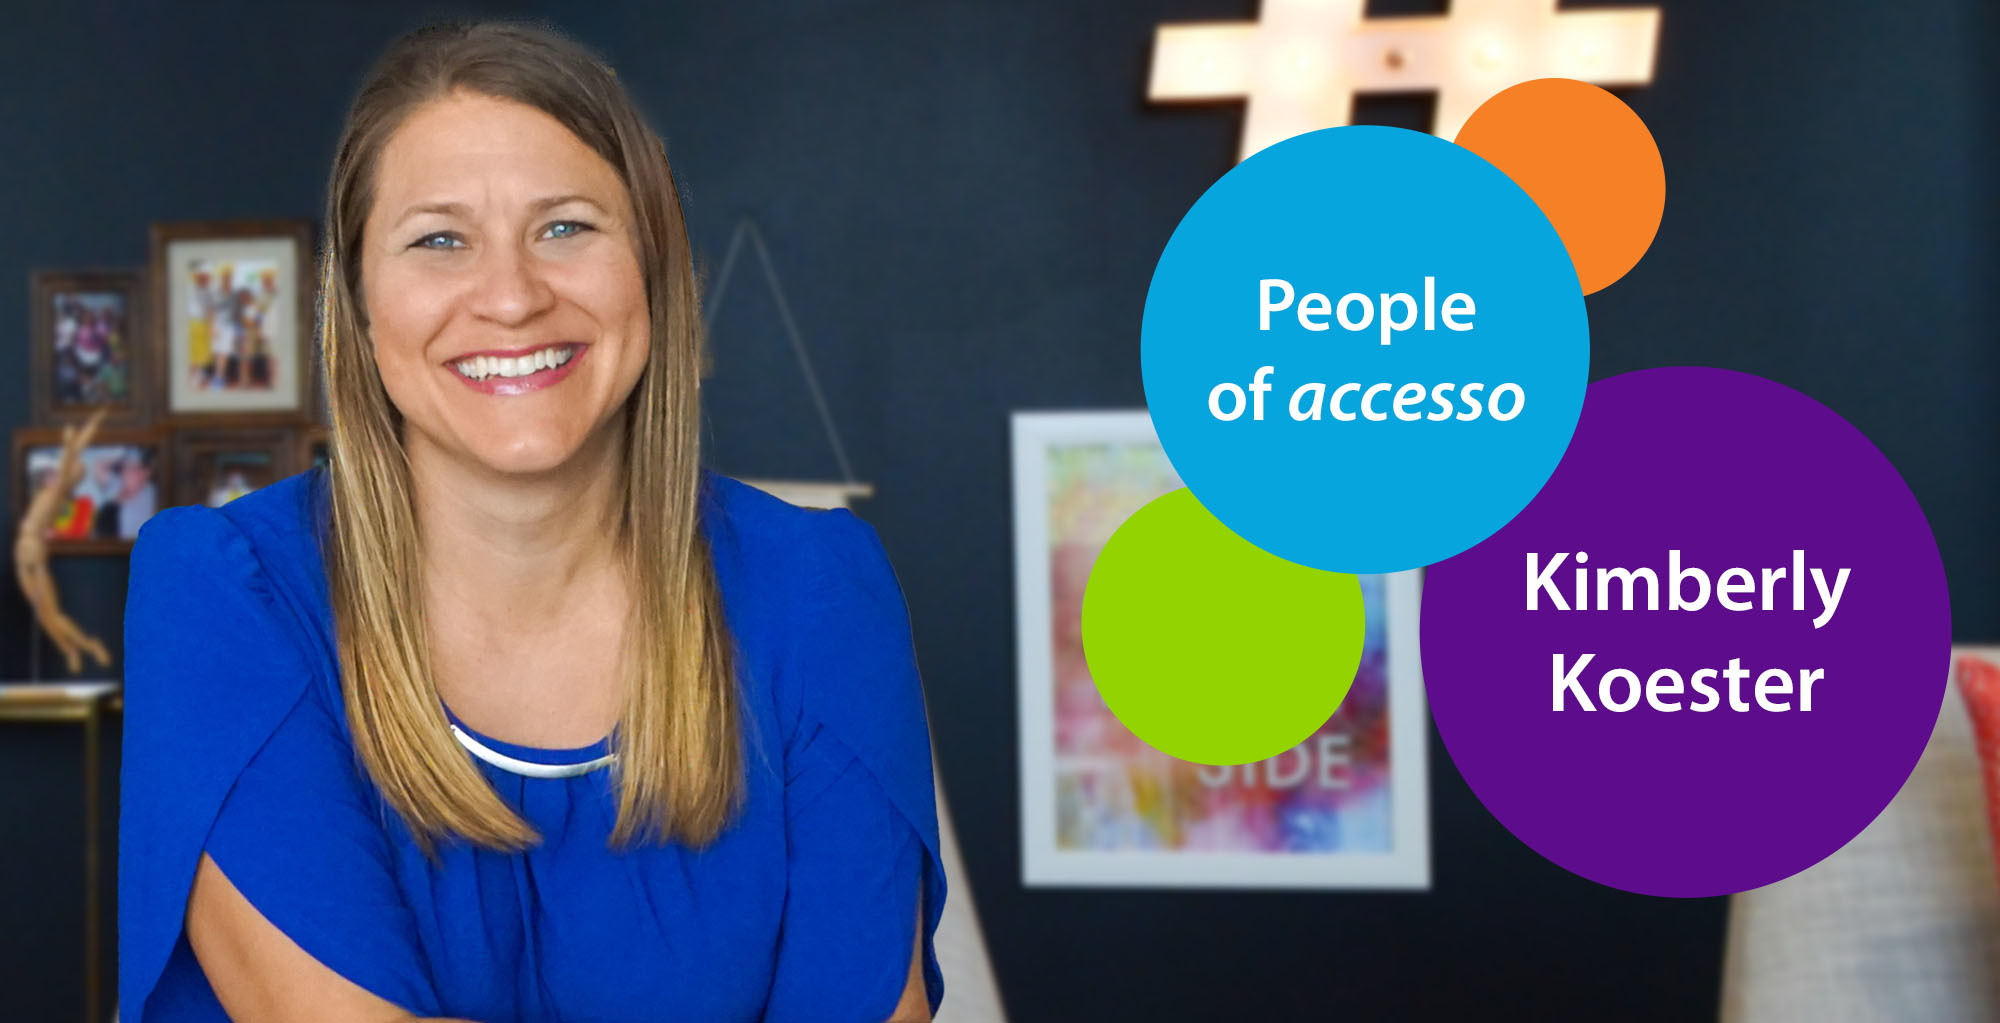 People of accesso kim koester